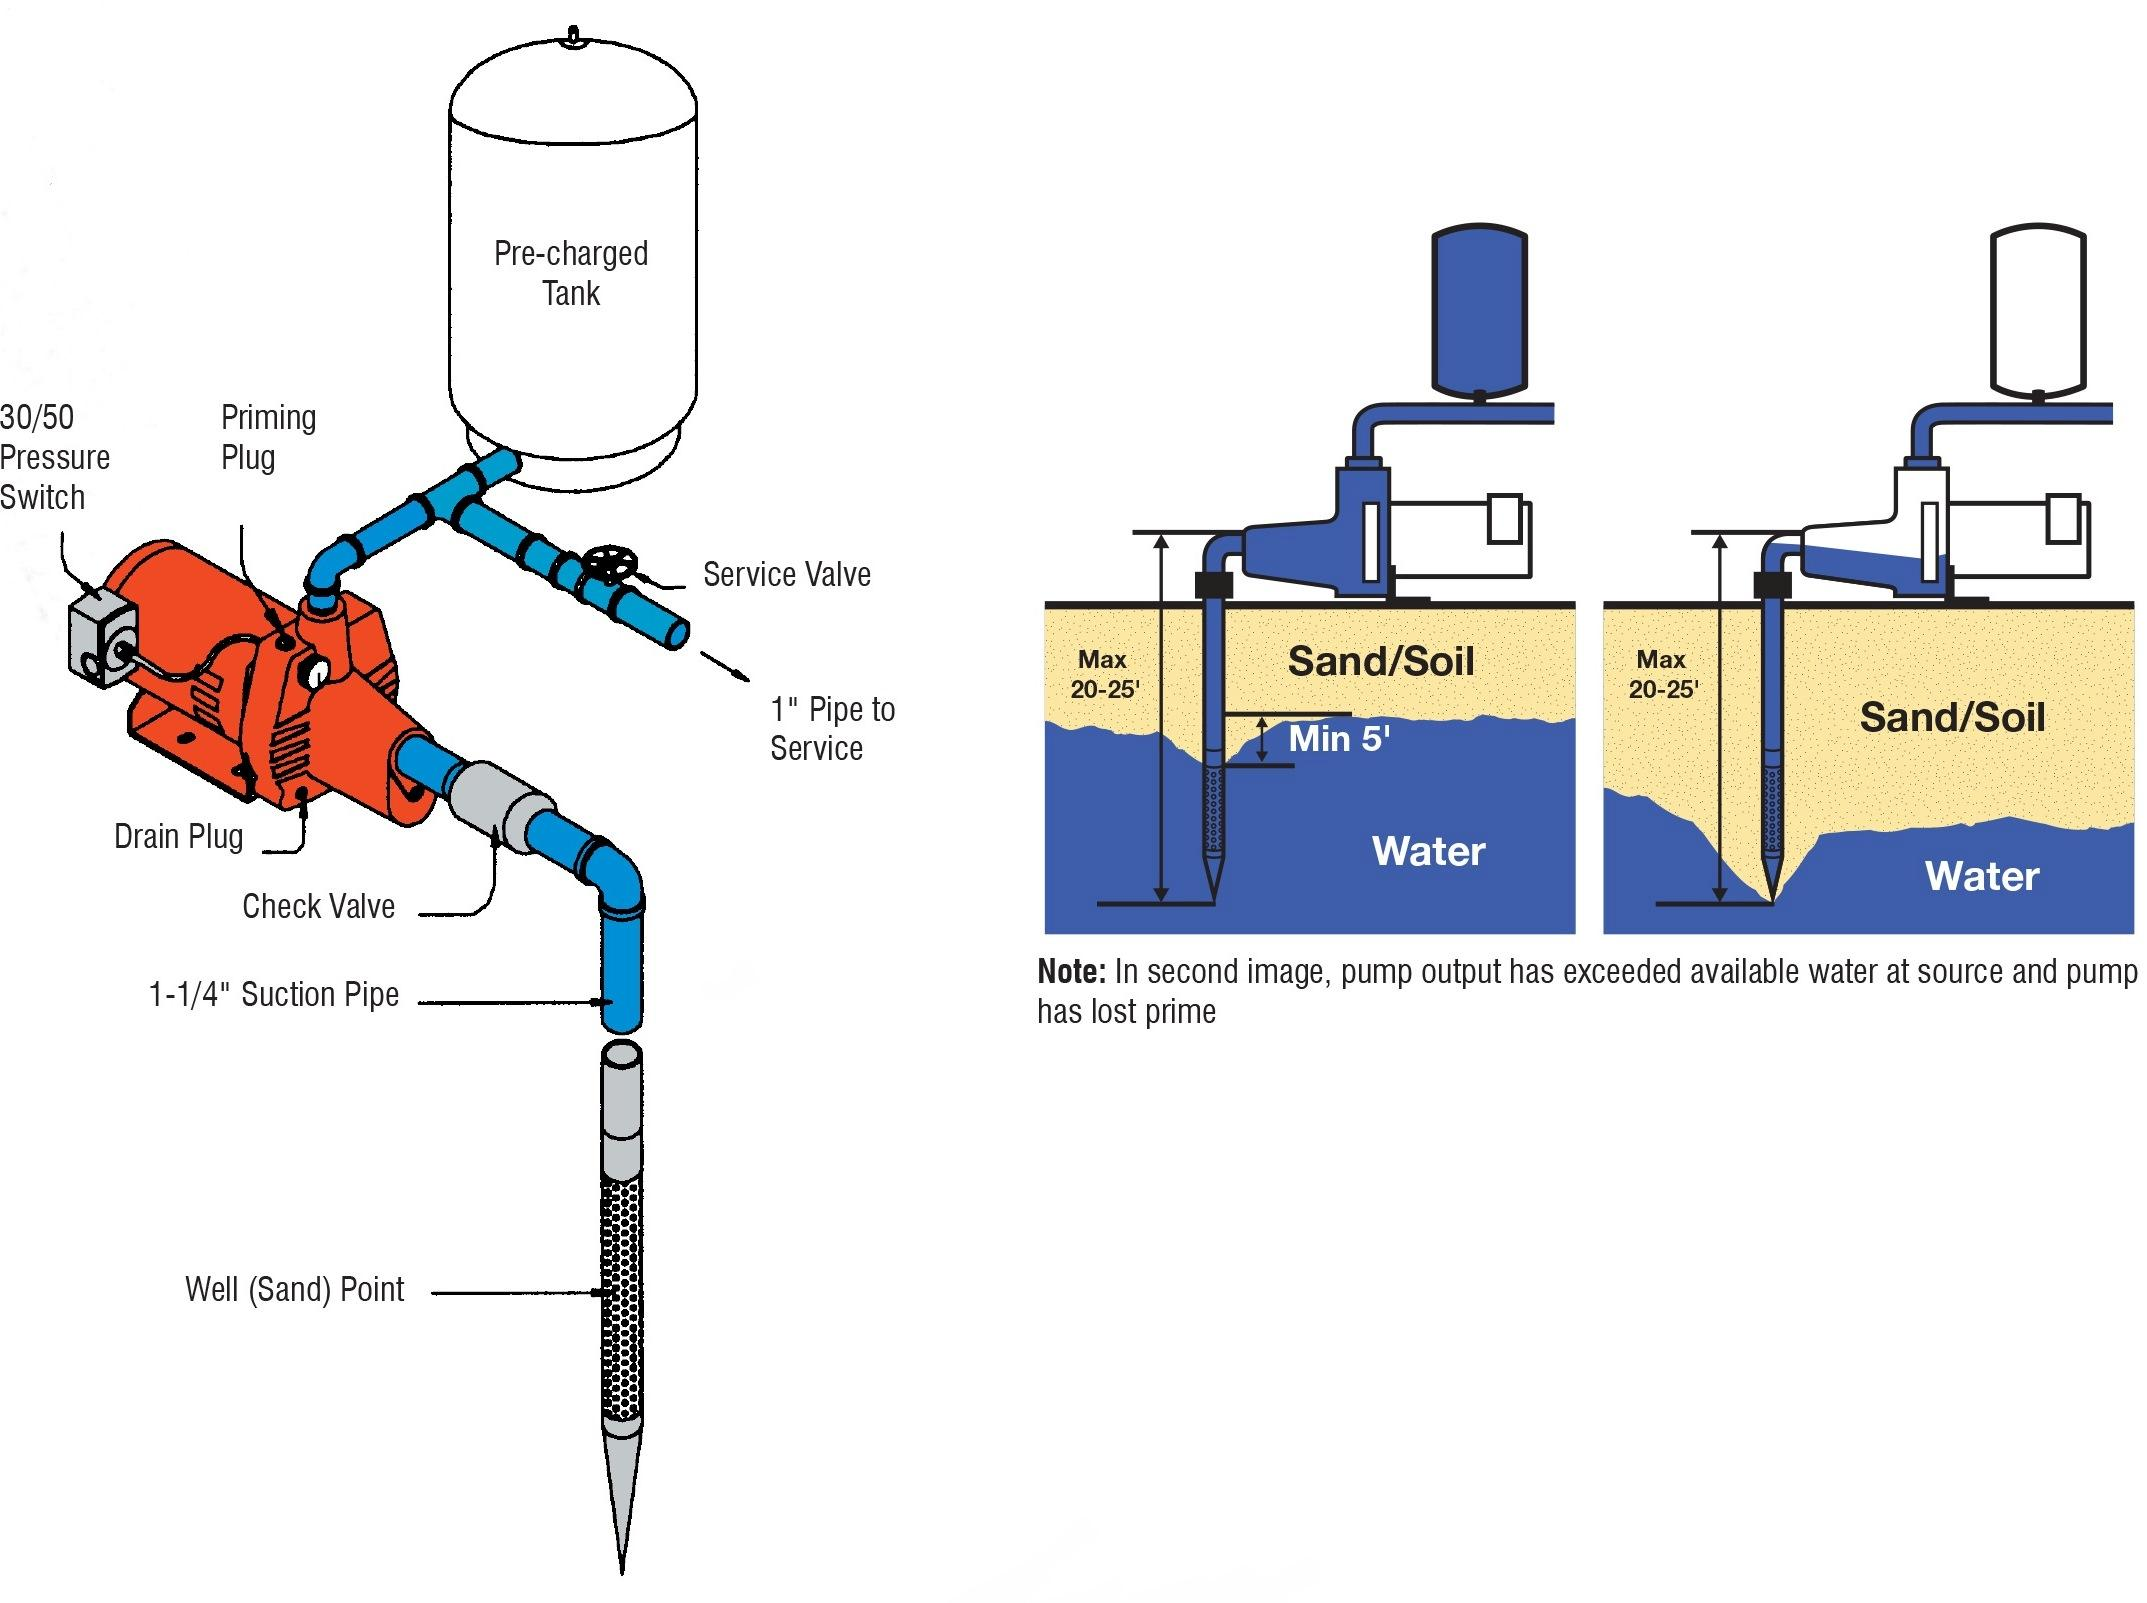 goulds well pump wiring diagram 4 wire well pump wiring diagram jet pump: goulds jet pump parts